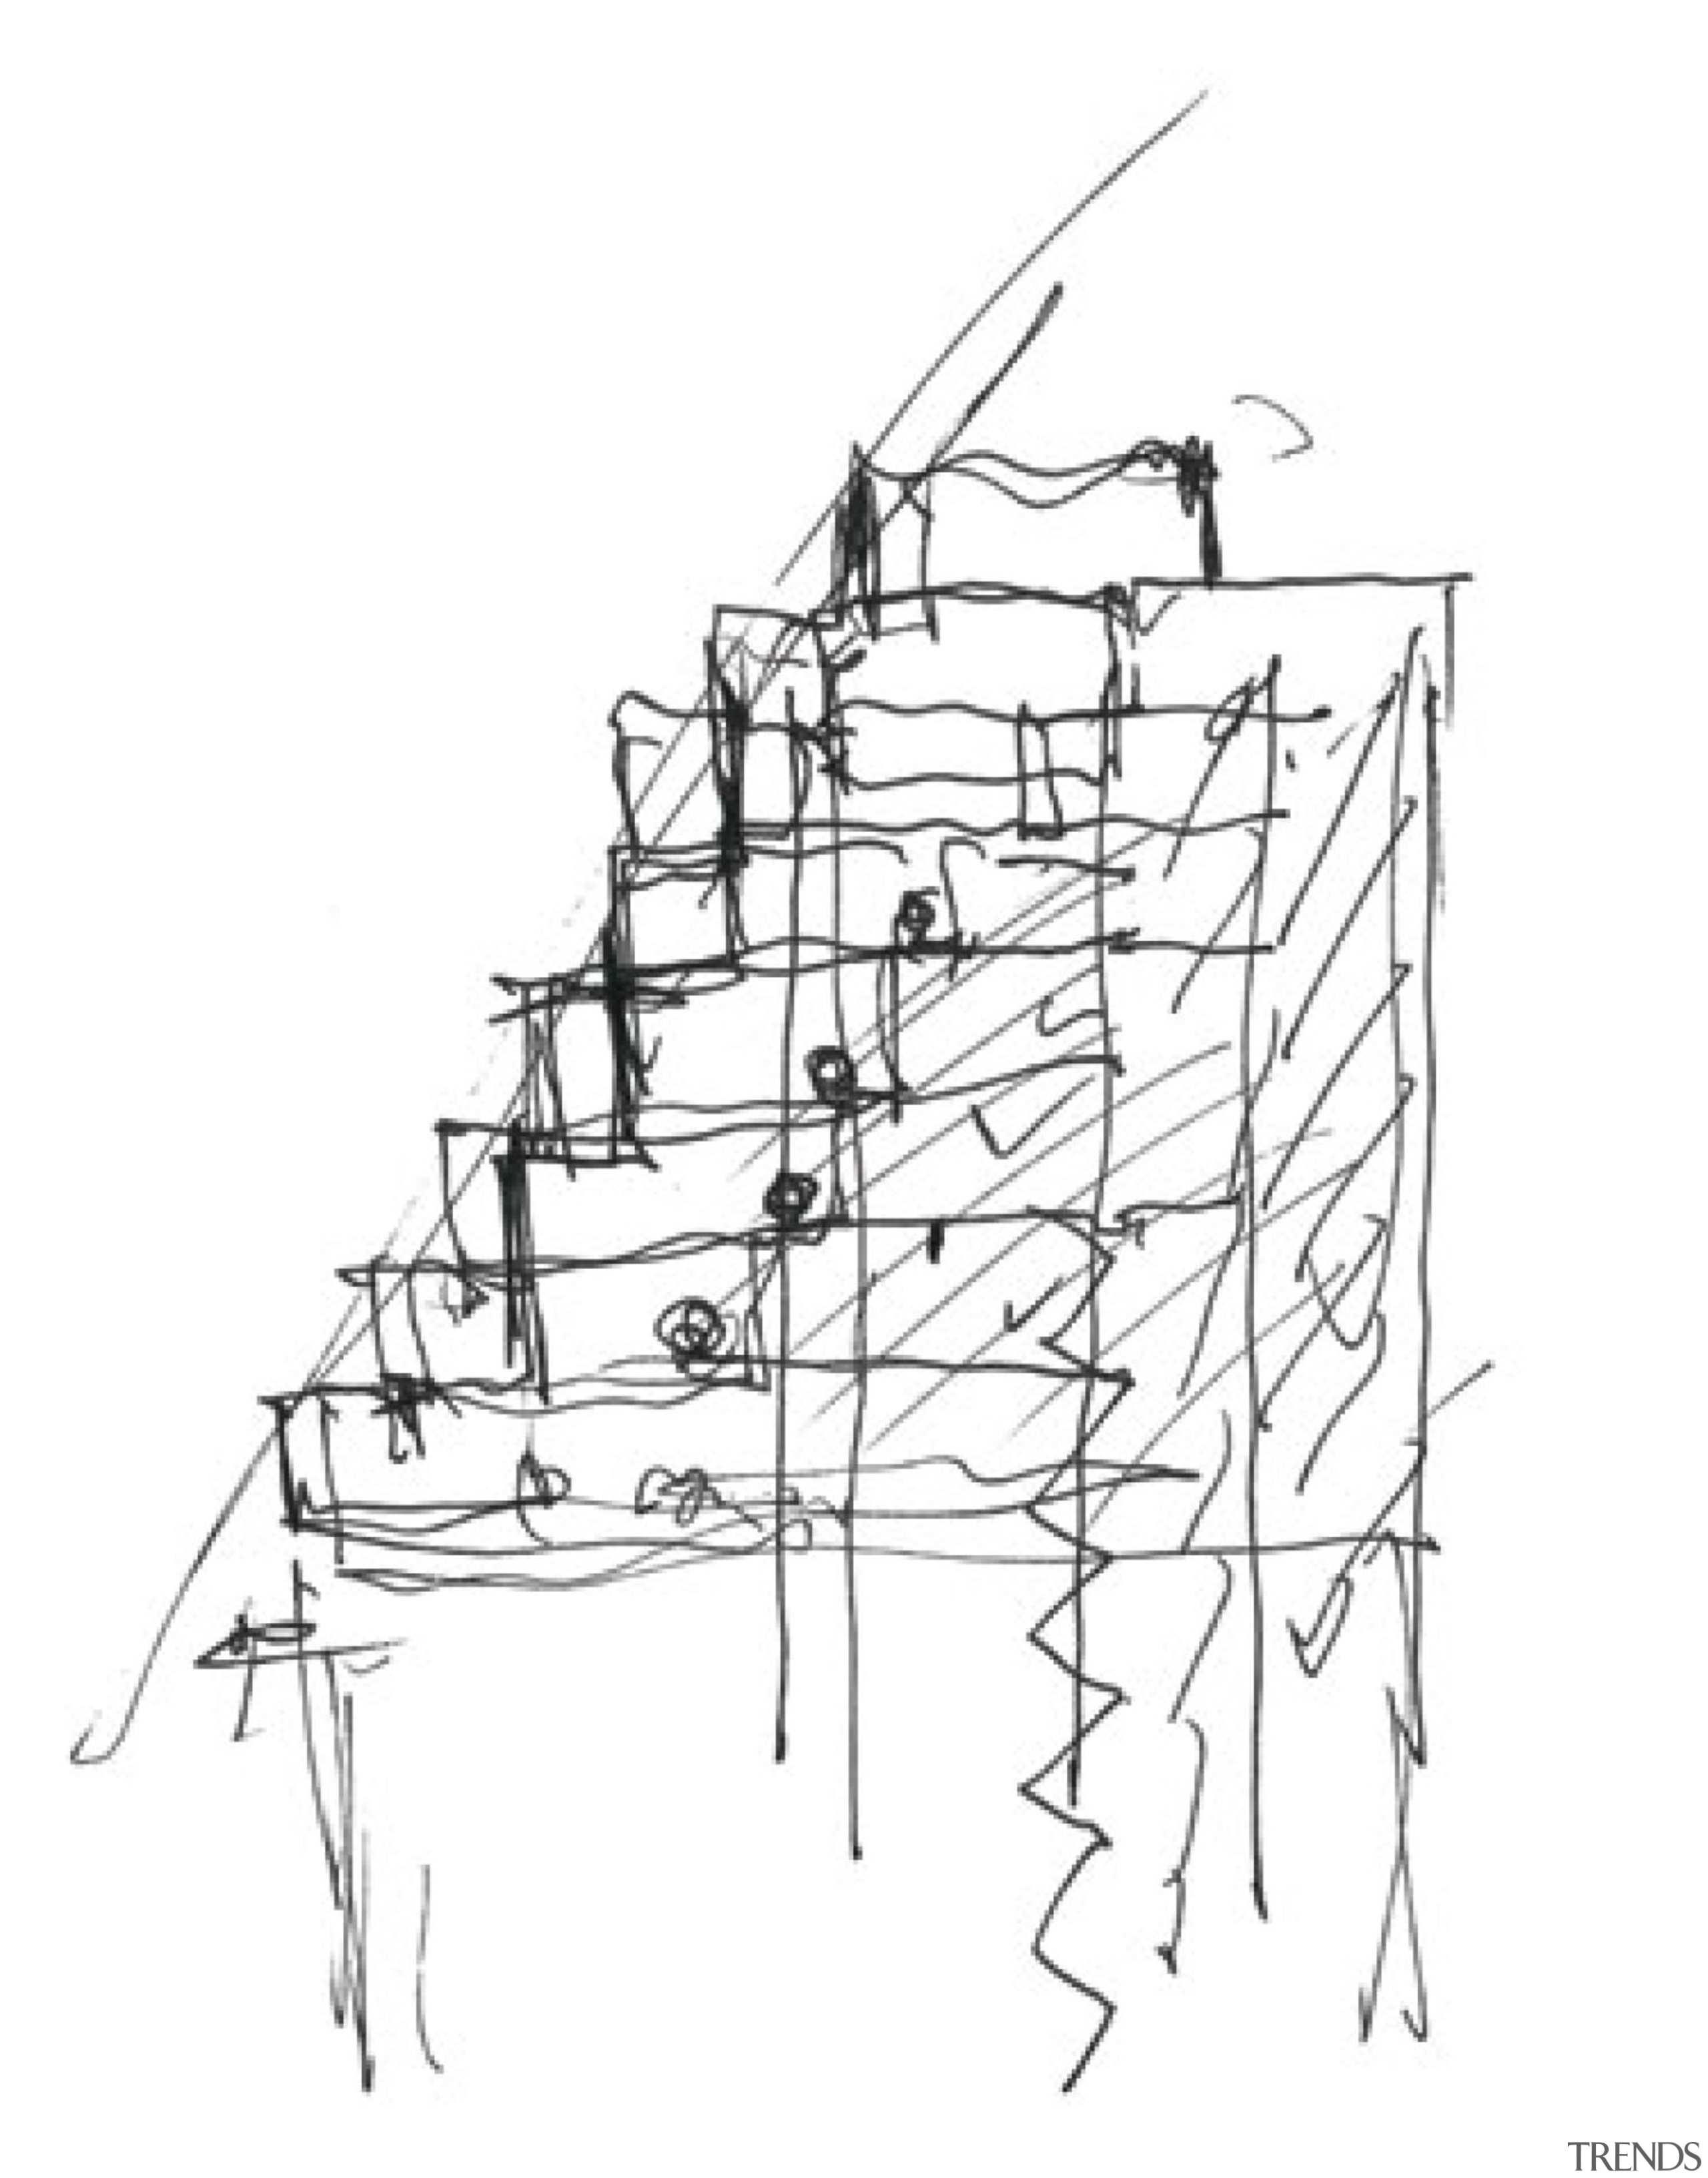 This concept sketch by architect Moshe Safdie shows angle, area, artwork, black and white, drawing, line, line art, product design, sketch, structure, white